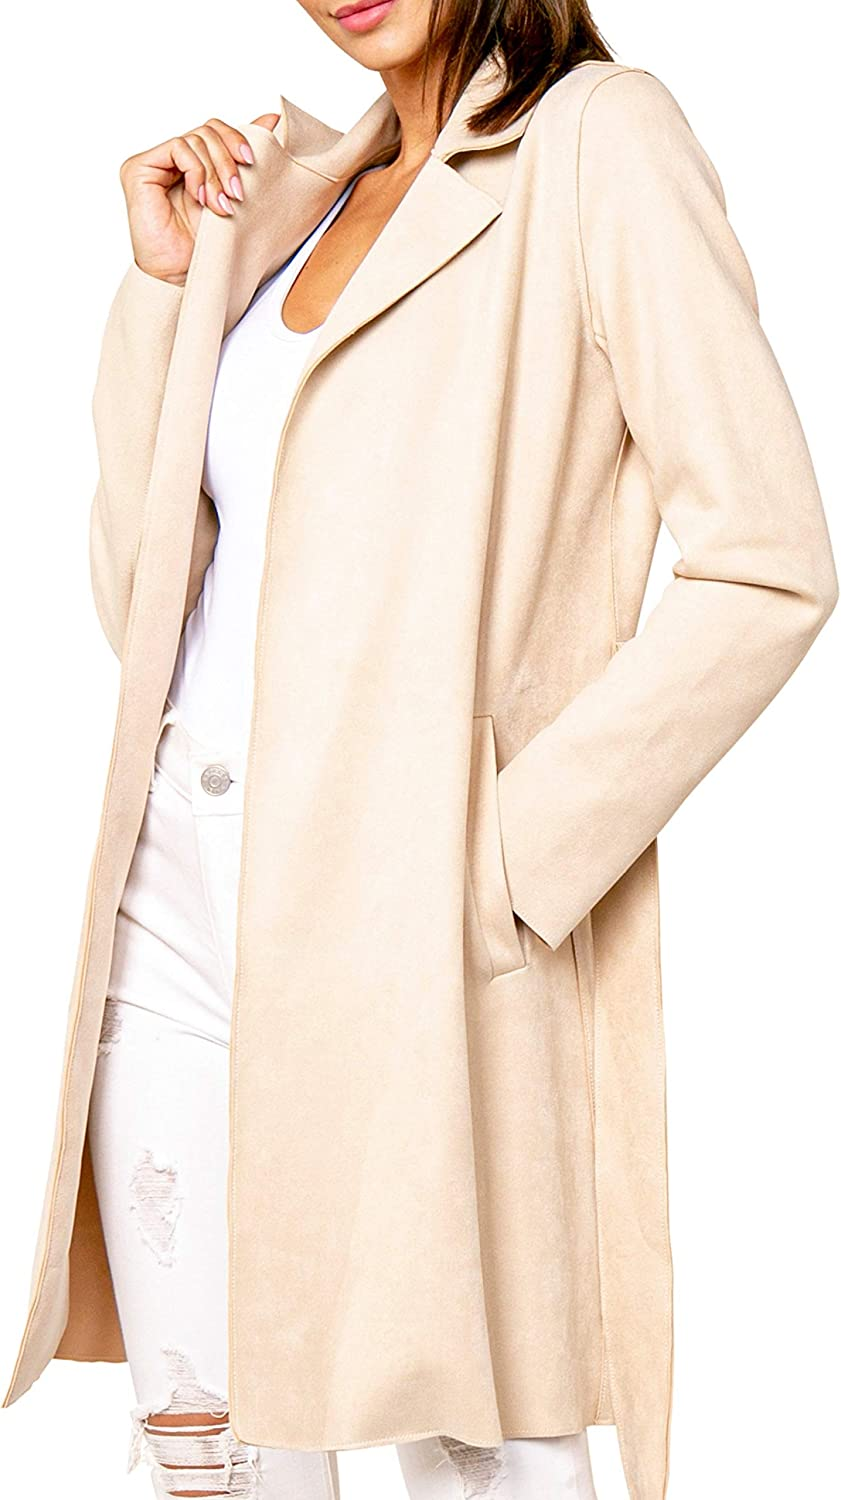 Love Token Womens Everson Twill Suede LiteTrench Coat